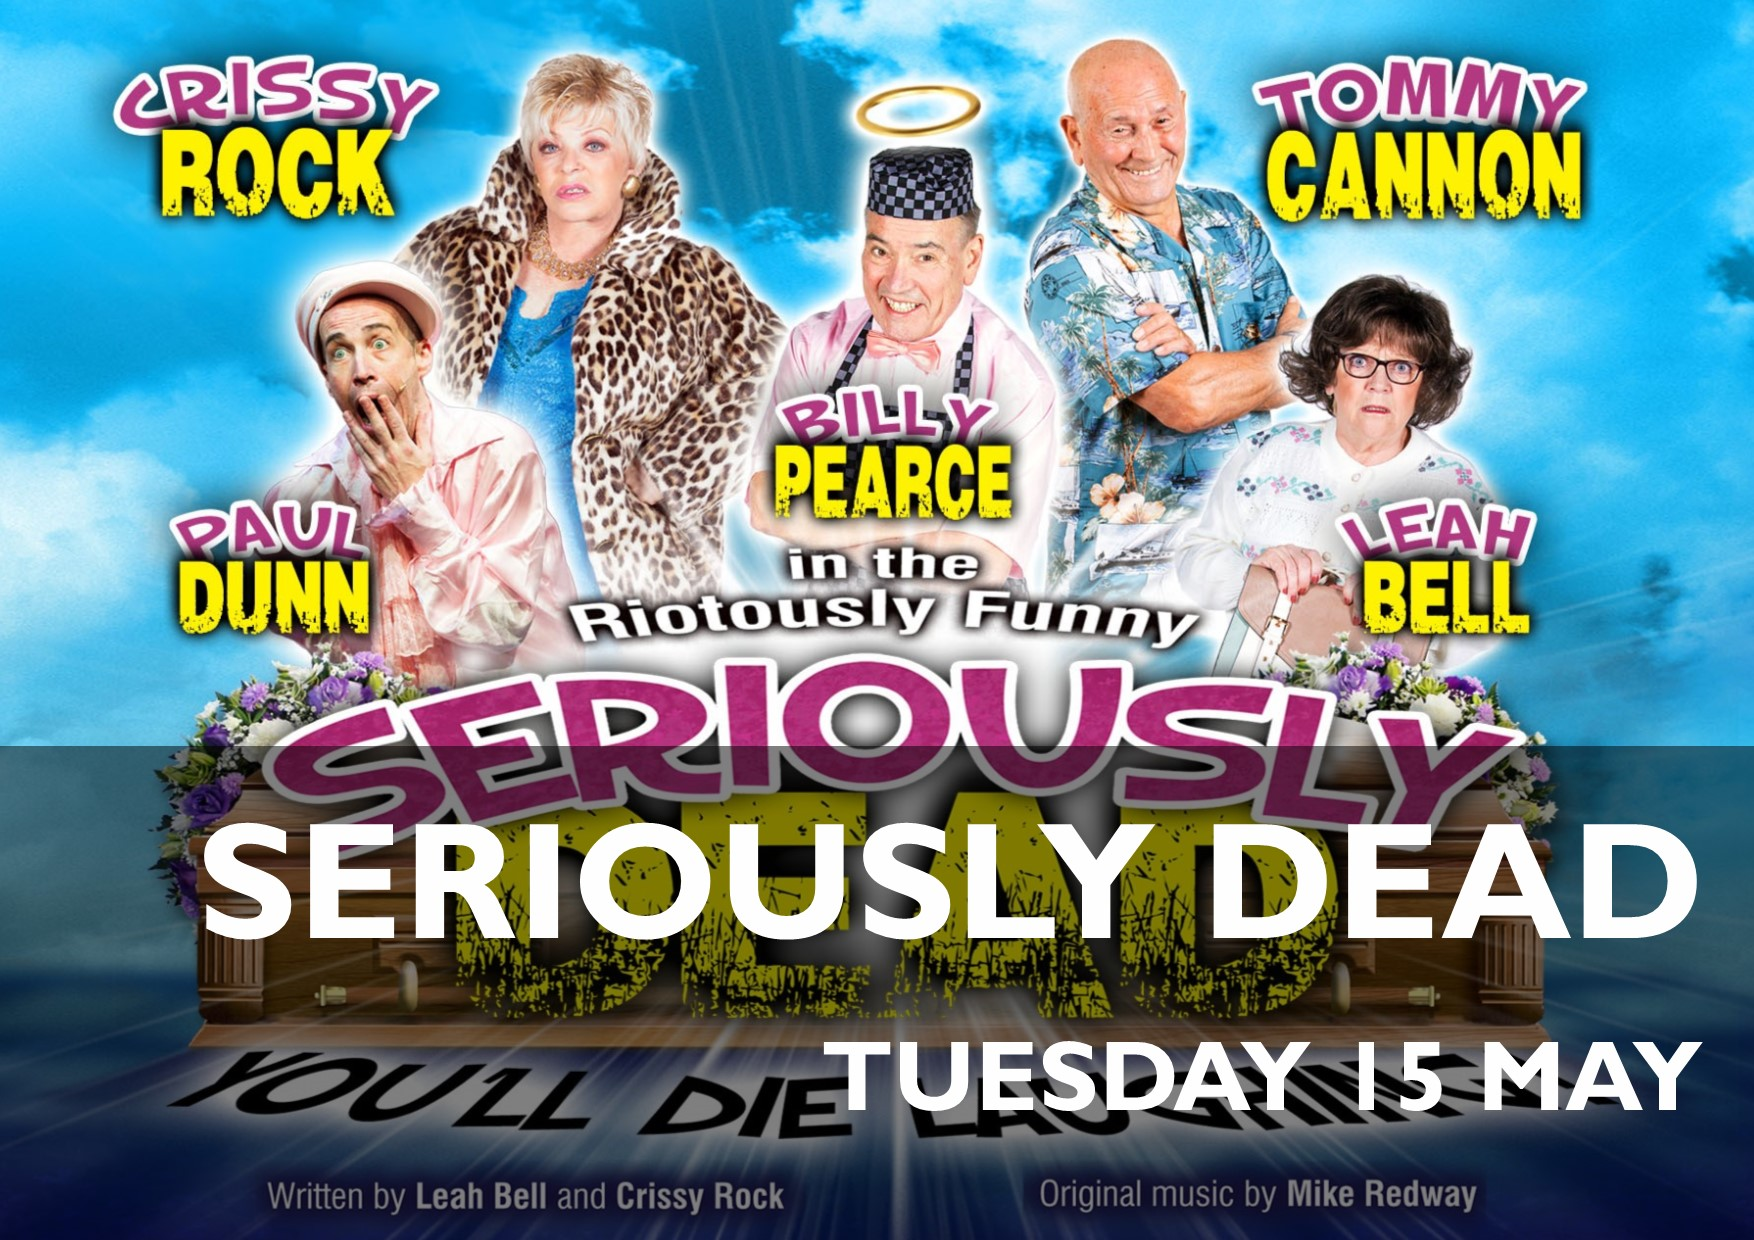 Seriously Dead - 15 May